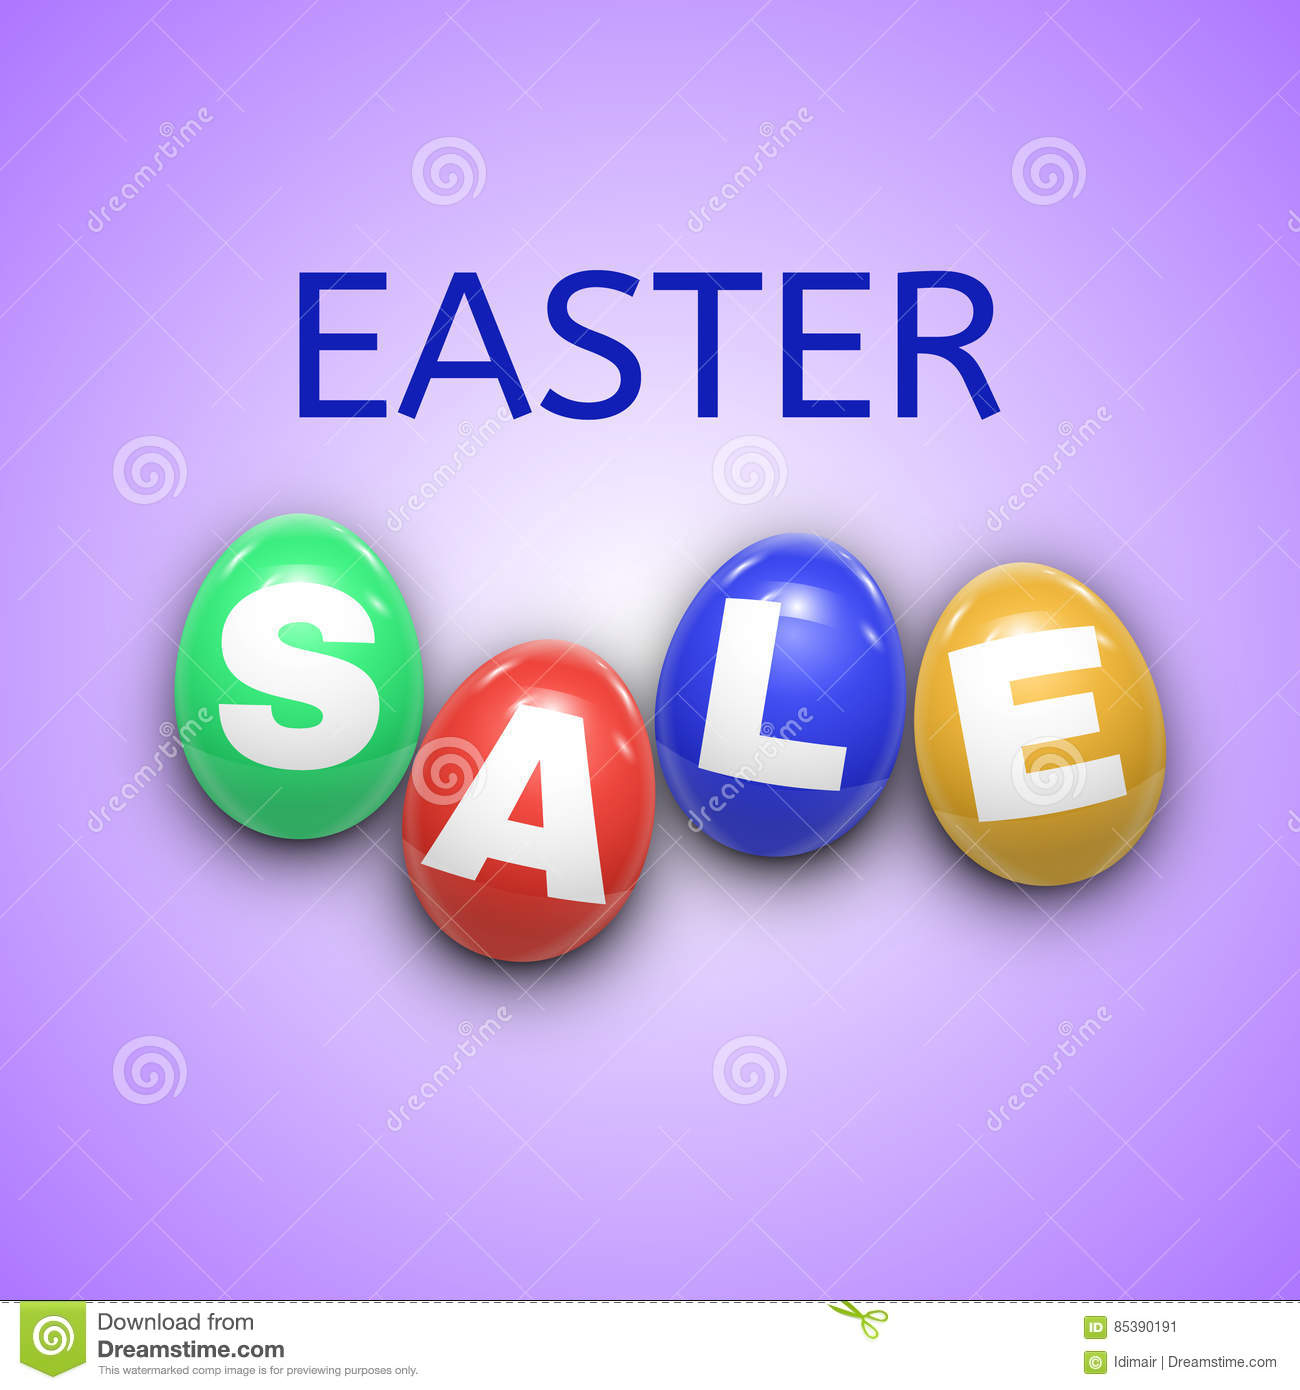 Easter Sale: Easter Sale Background With Eggs. Vector Stock Vector